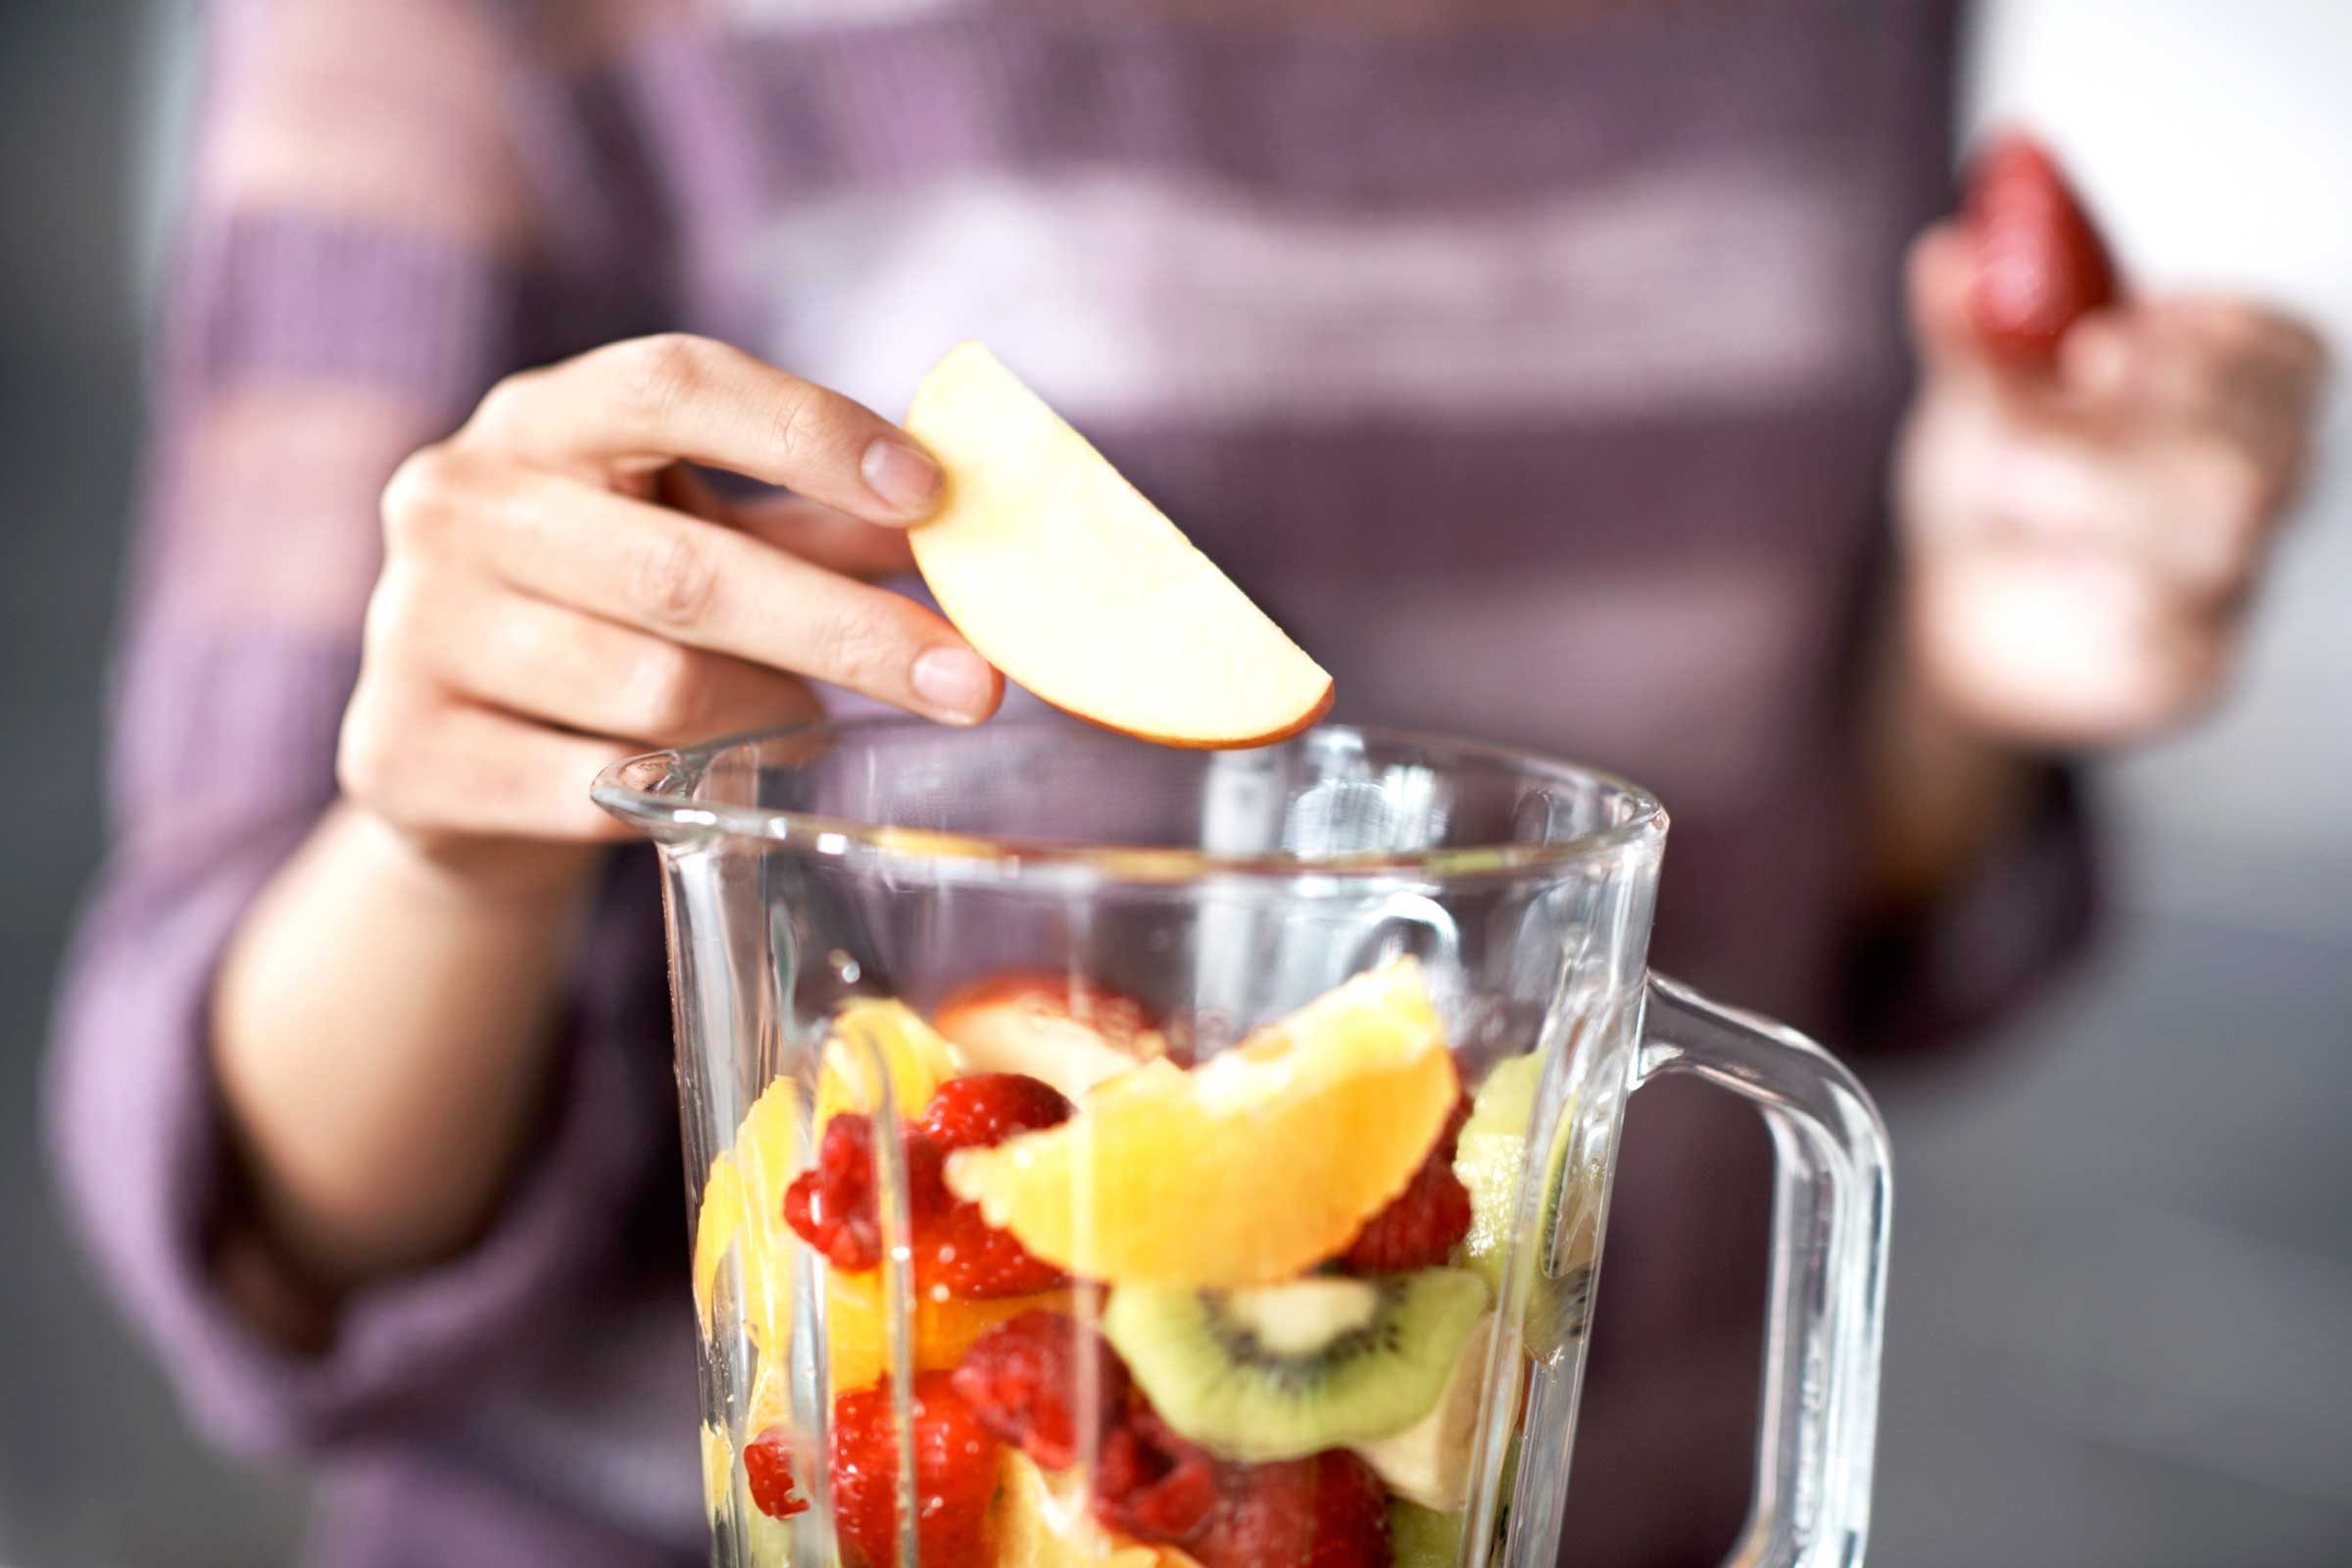 Take irwin weight loss can easily